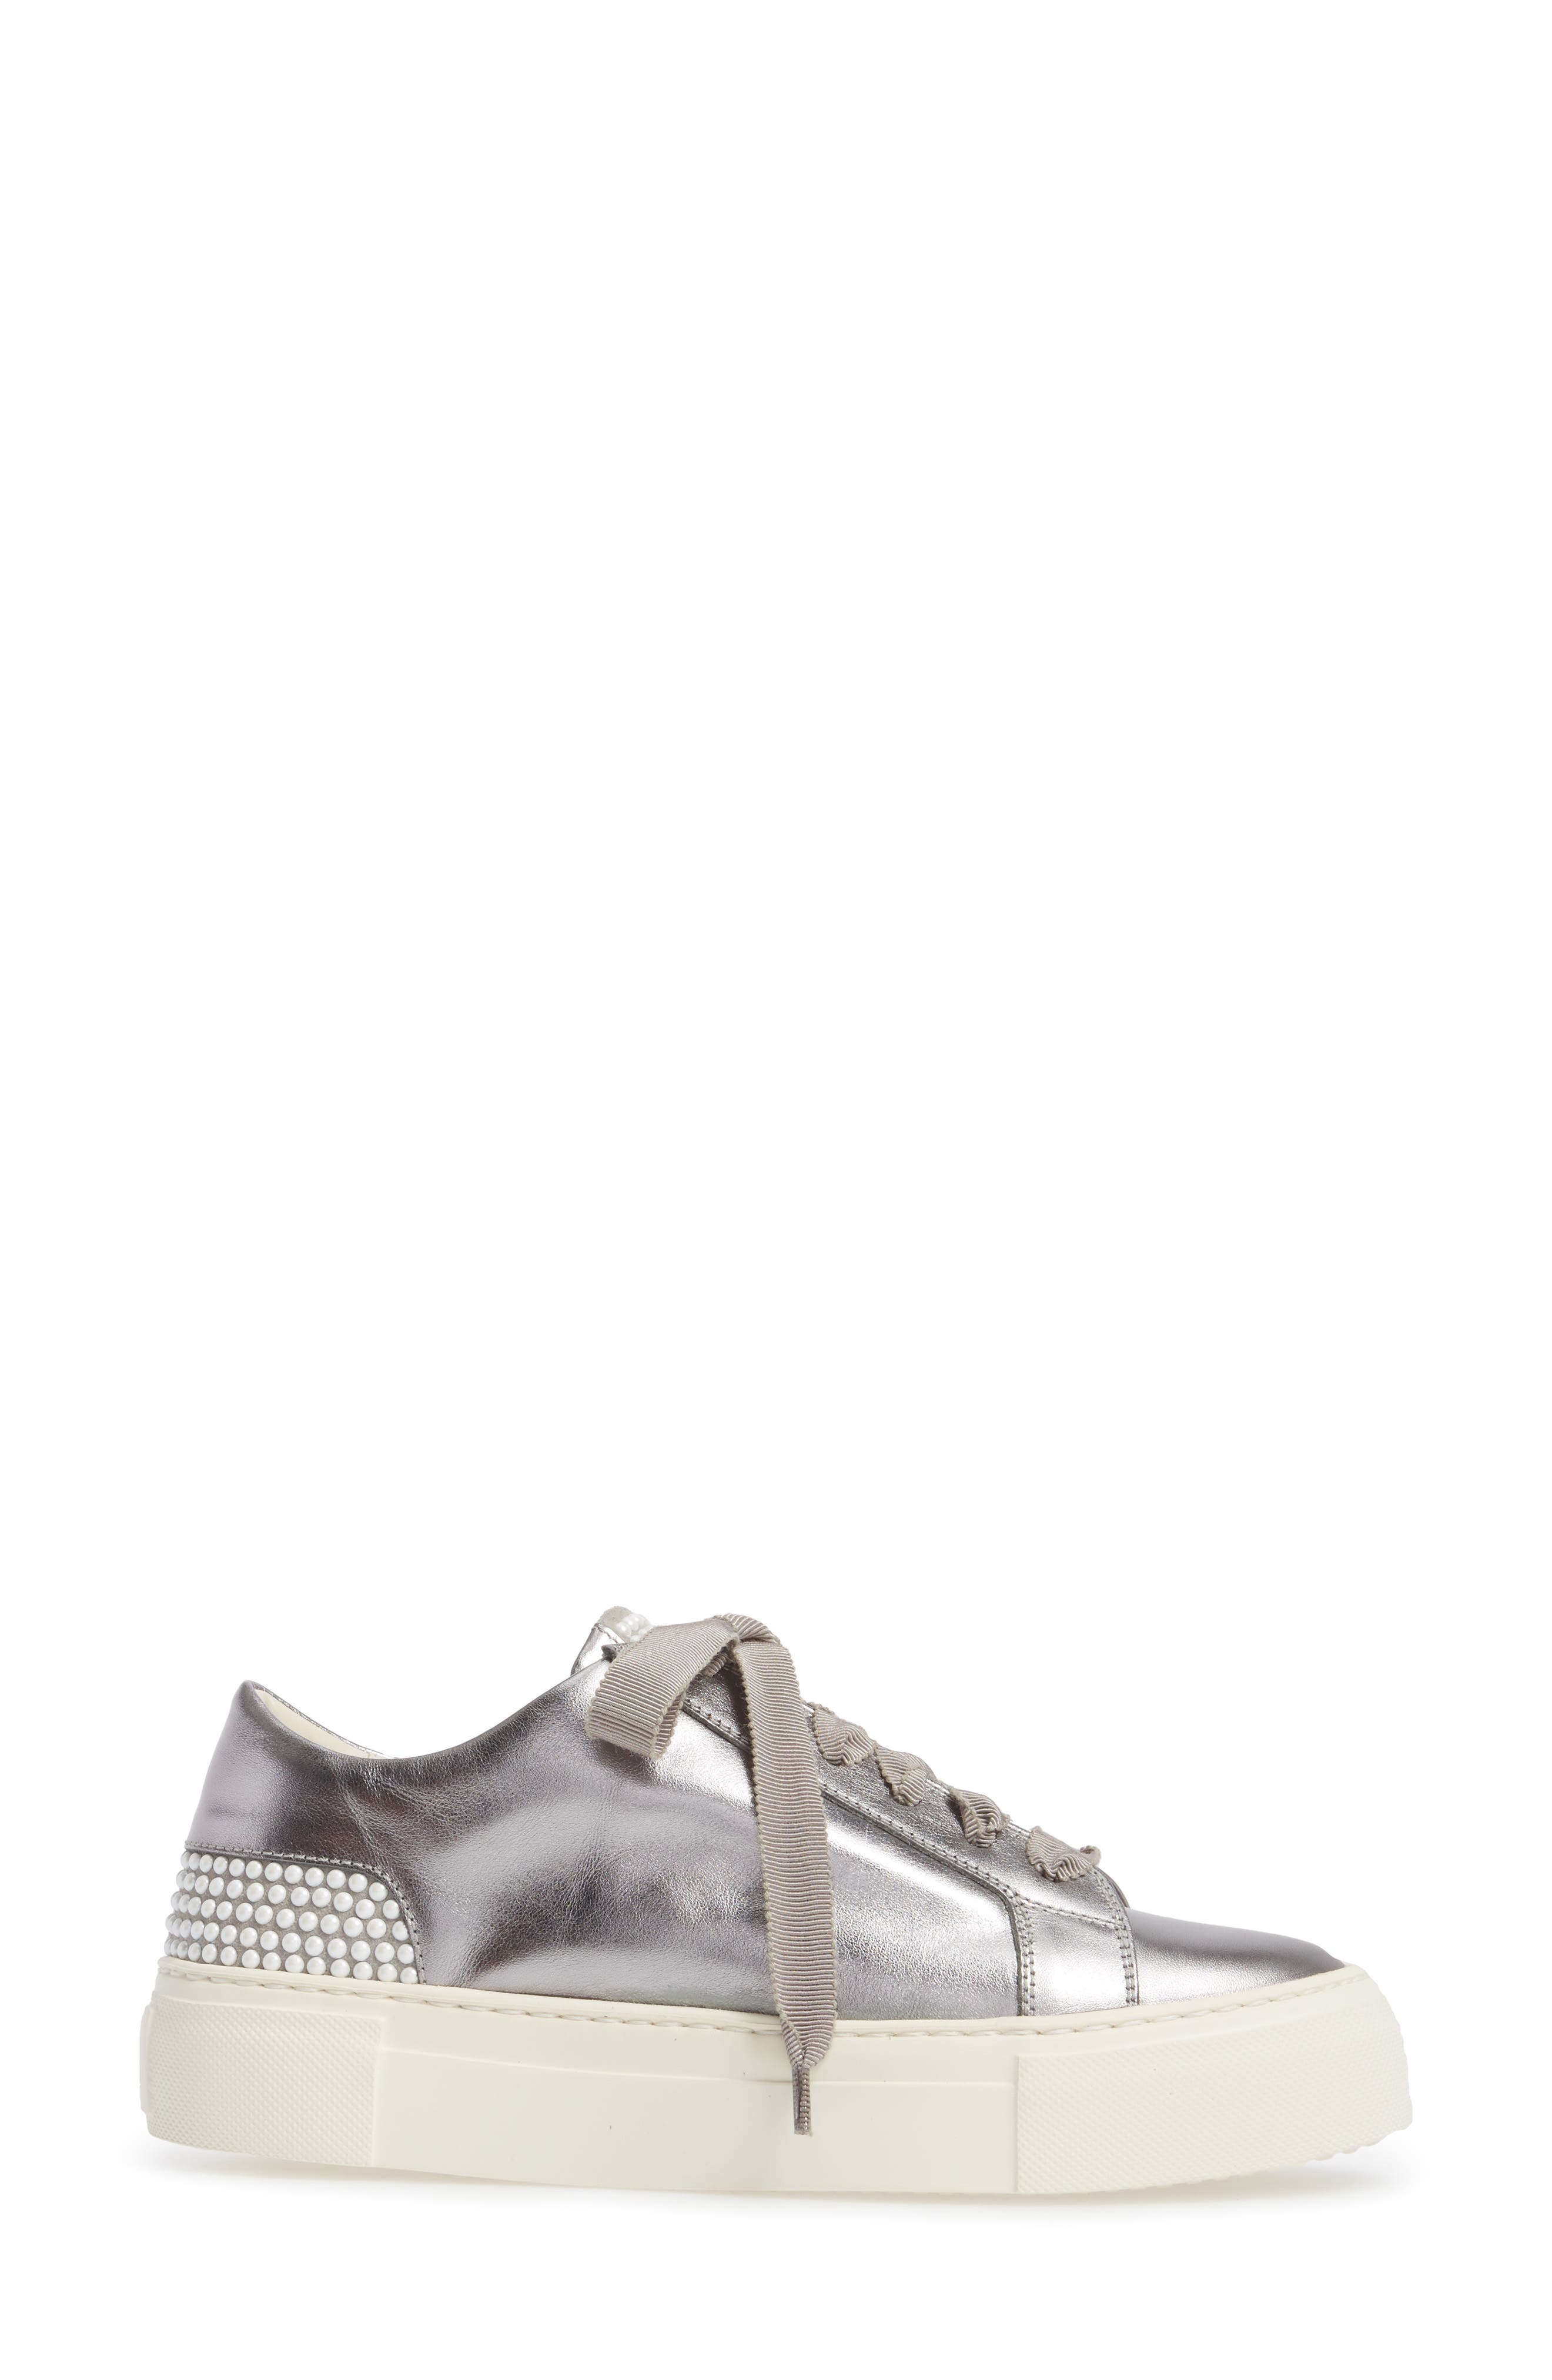 Alternate Image 3  - AGL Pearl Sneaker (Women)